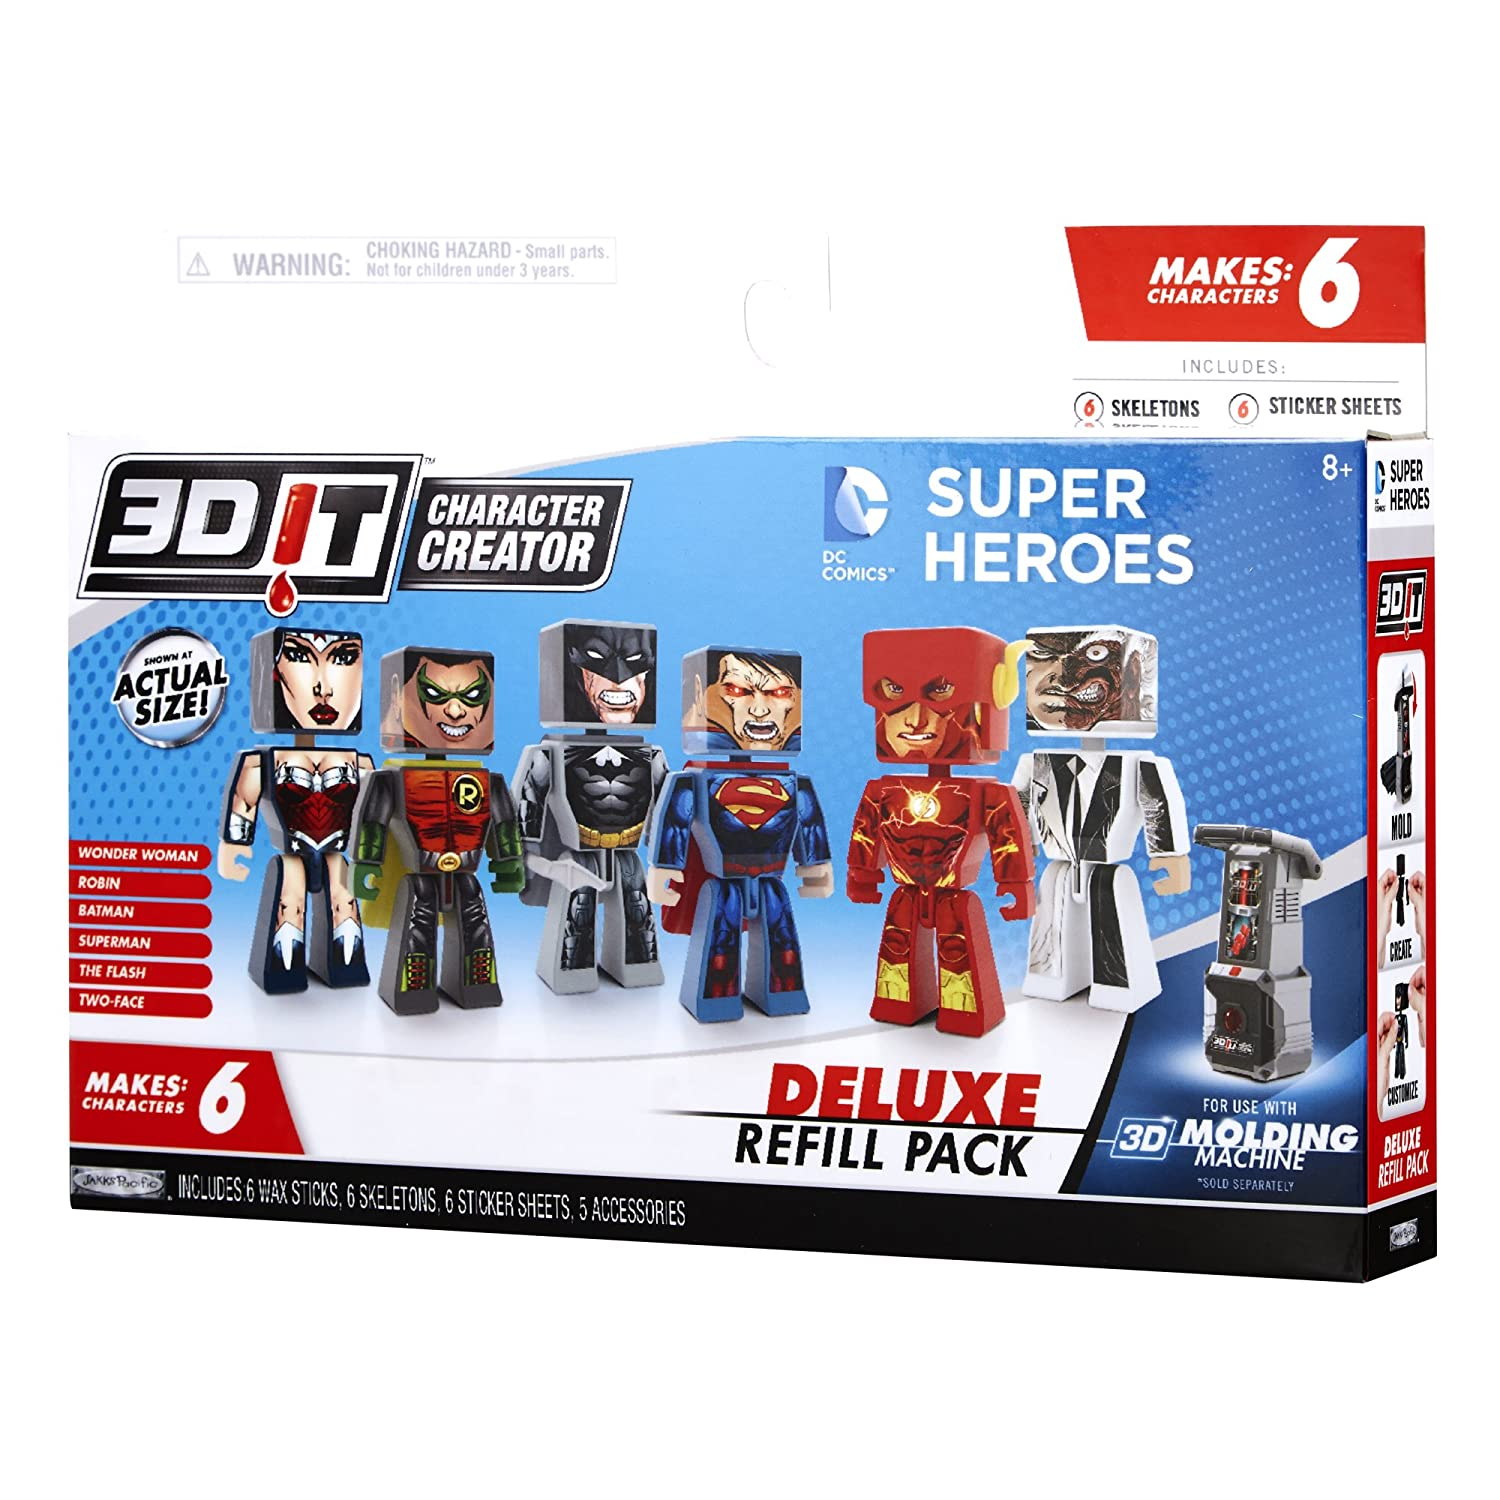 3D Character Creator DC Comics Deluxe Refill Pack Novelty Toy